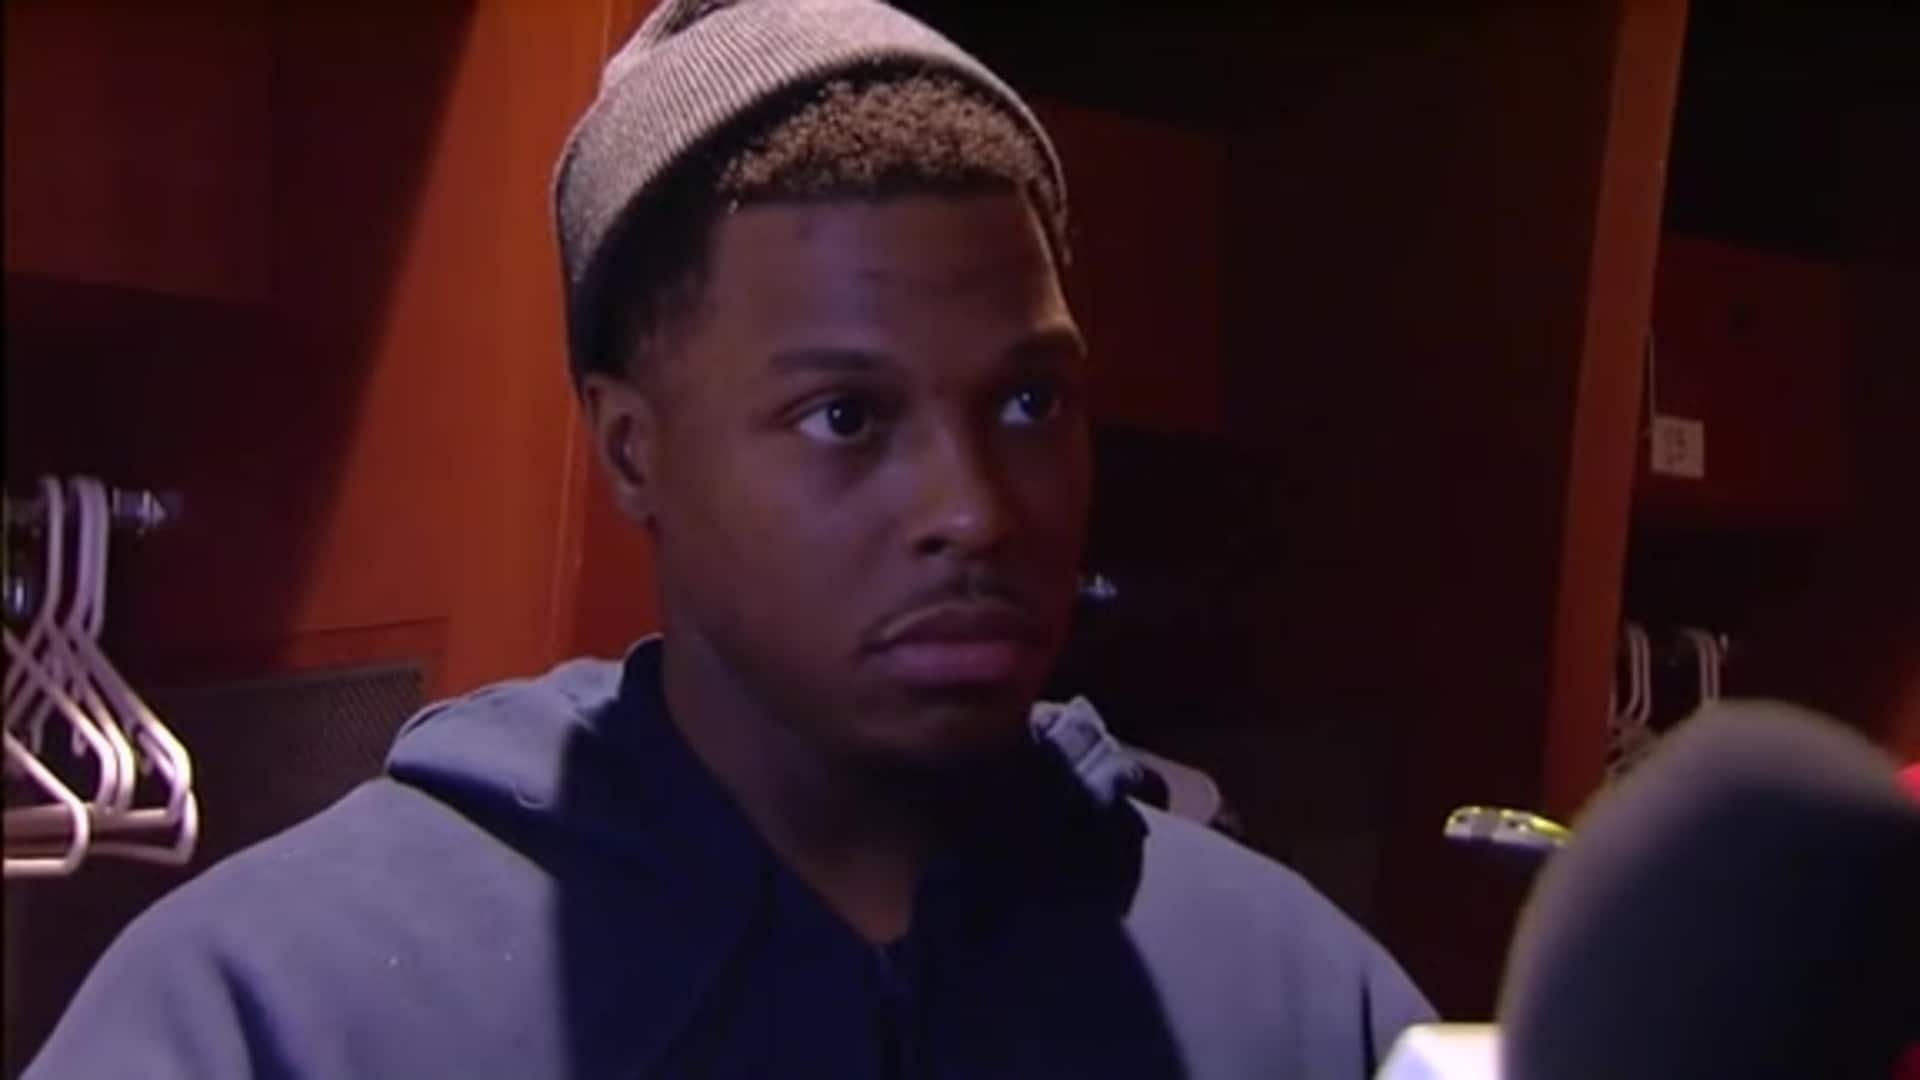 Raptors Post Game: Kyle Lowry - November 8, 2019